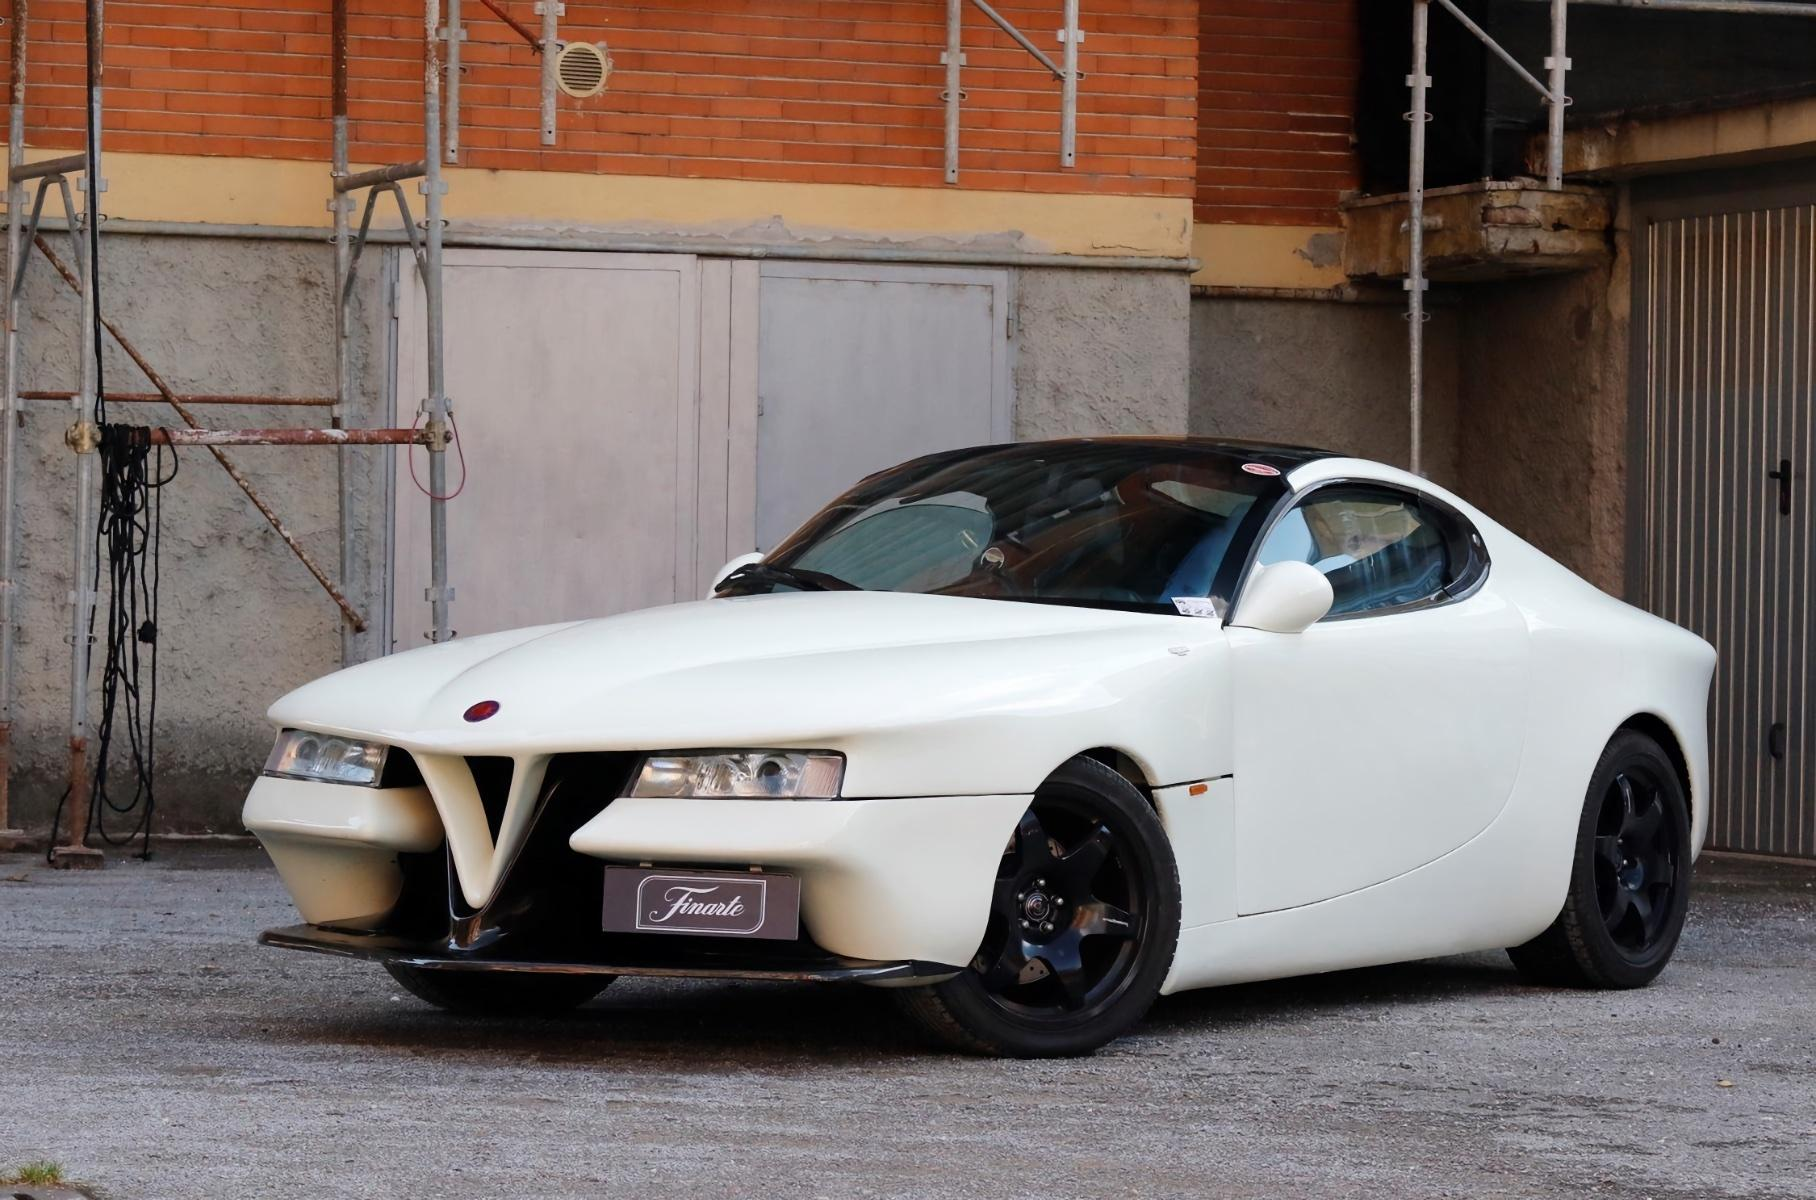 Auction house Finarte has put up a unique Alfa Romeo Vittoria car for sale that Carrozzeria Castagna built for the 1995 Geneva International Motor Show. The deal is expected to conclude at around €200,000.